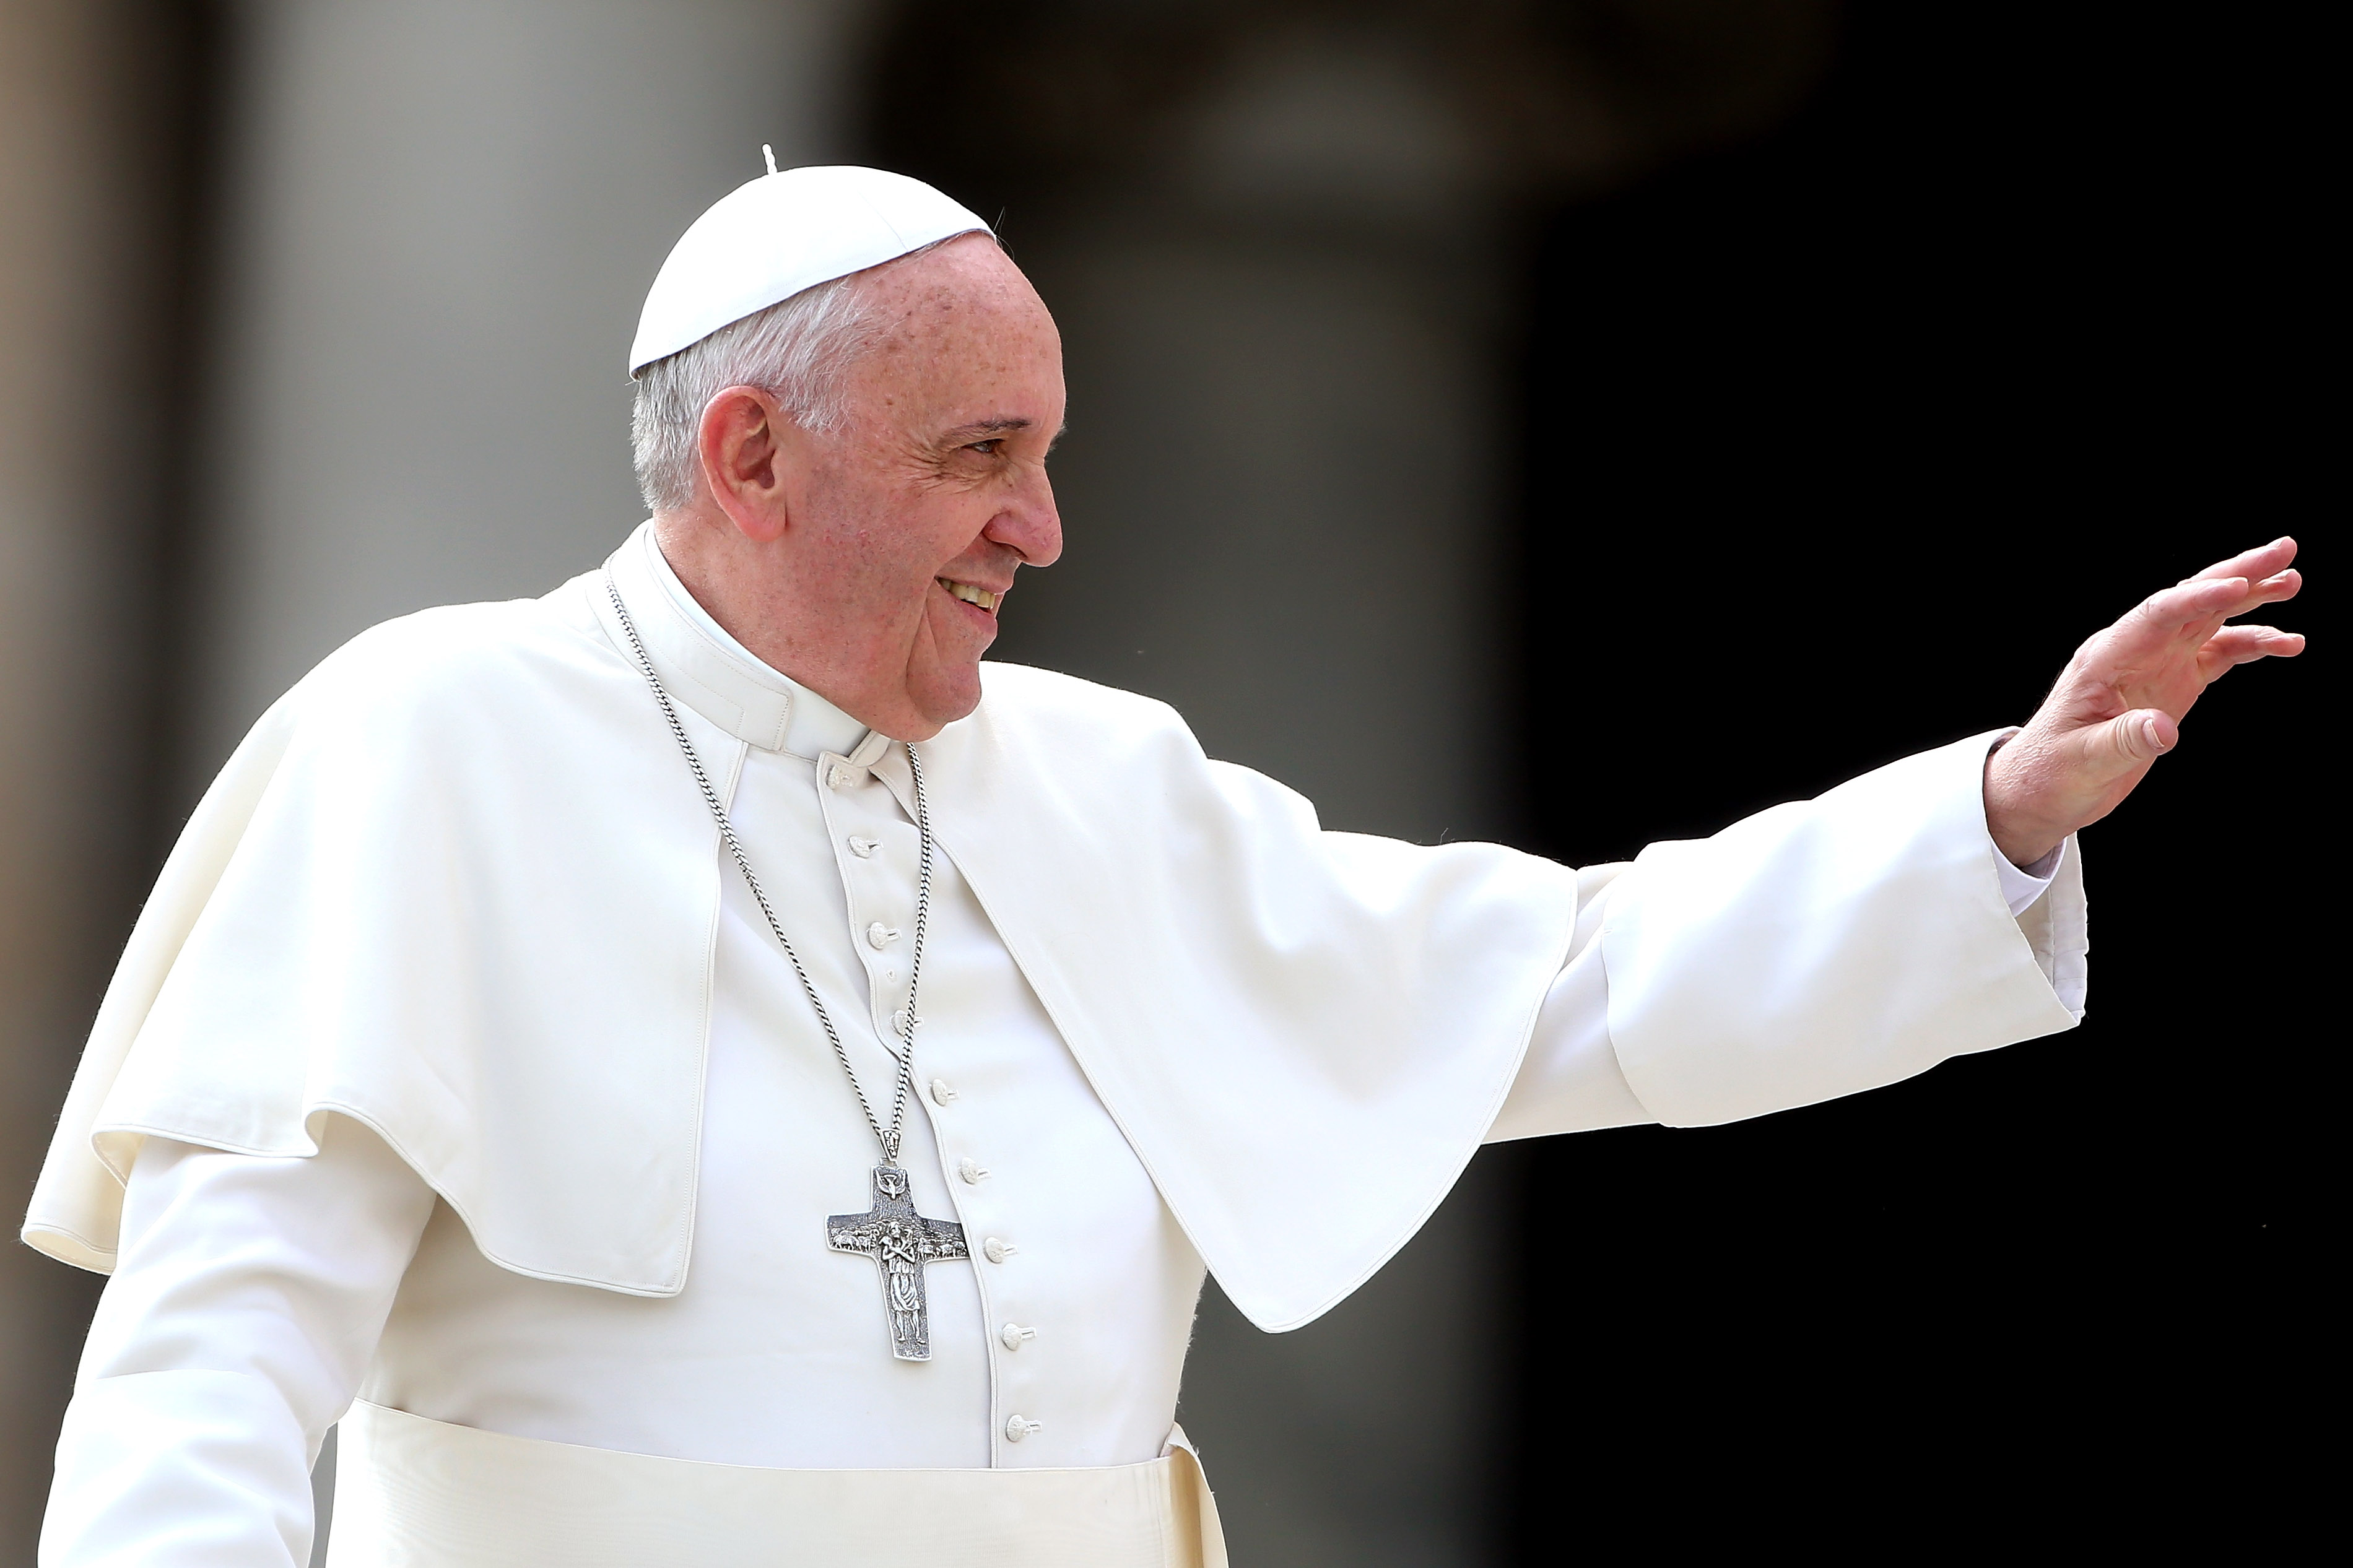 Pope Francis waves to the faithful as he holds his weekly audience in St. Peter's Square on March 19, 2014 in Vatican City, Vatican.